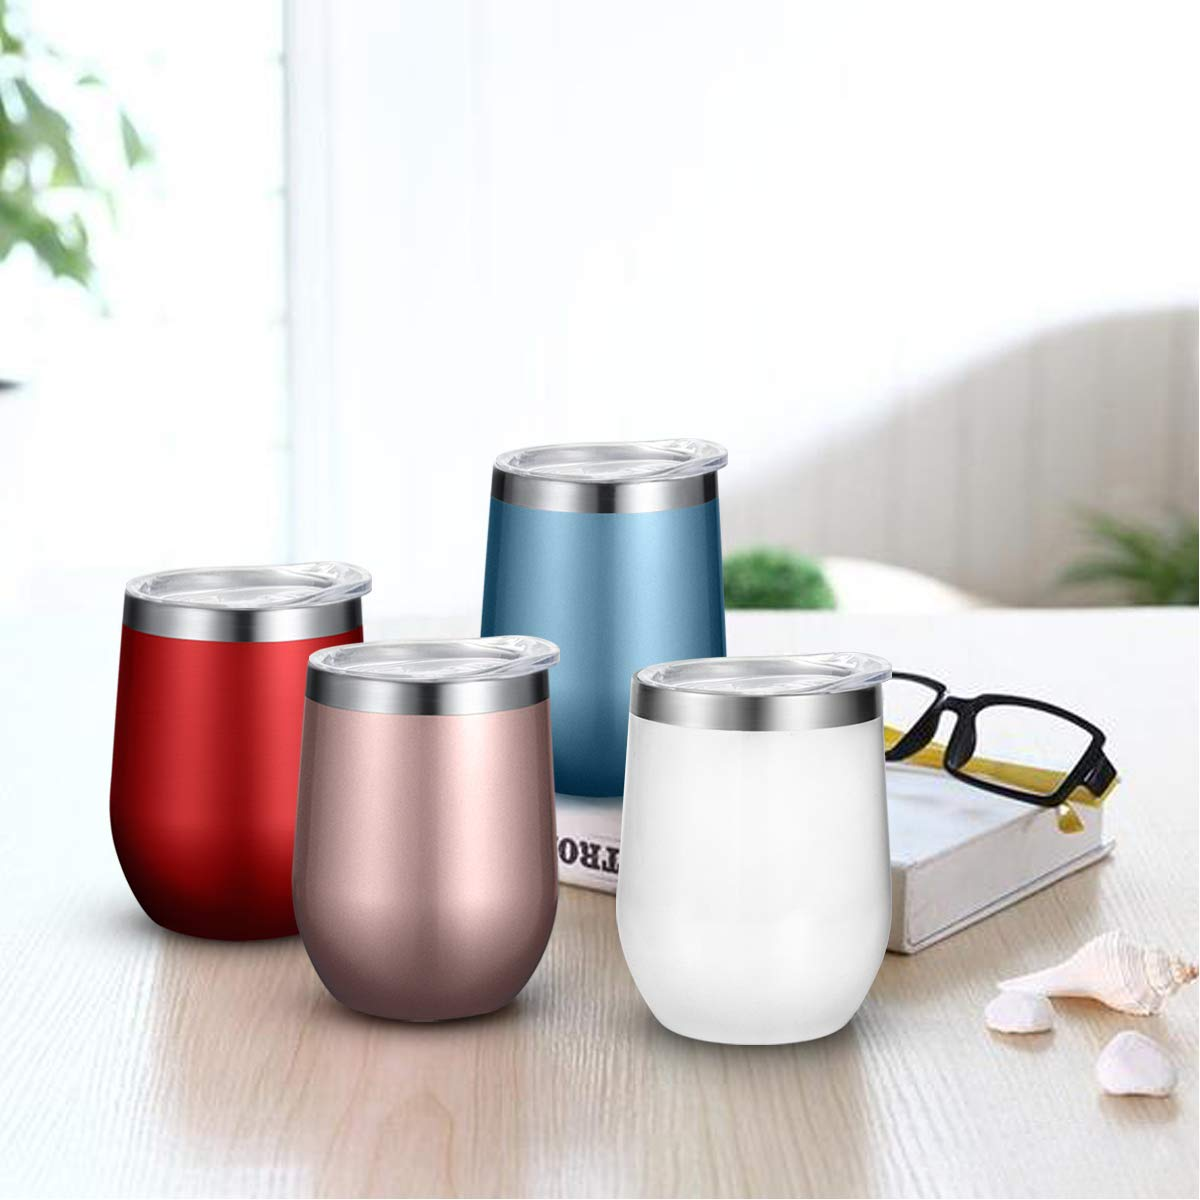 Fungun 6 pack 12 oz Stainless Steel Stemless Wine Glass Tumbler Double Wall Vacuum Insulated Wine Tumbler with Slip Lids Set of 6 for Coffee, Wine, Cocktails, Ice Cream Including 6 Straws(Rose Gold) by Fungun (Image #4)